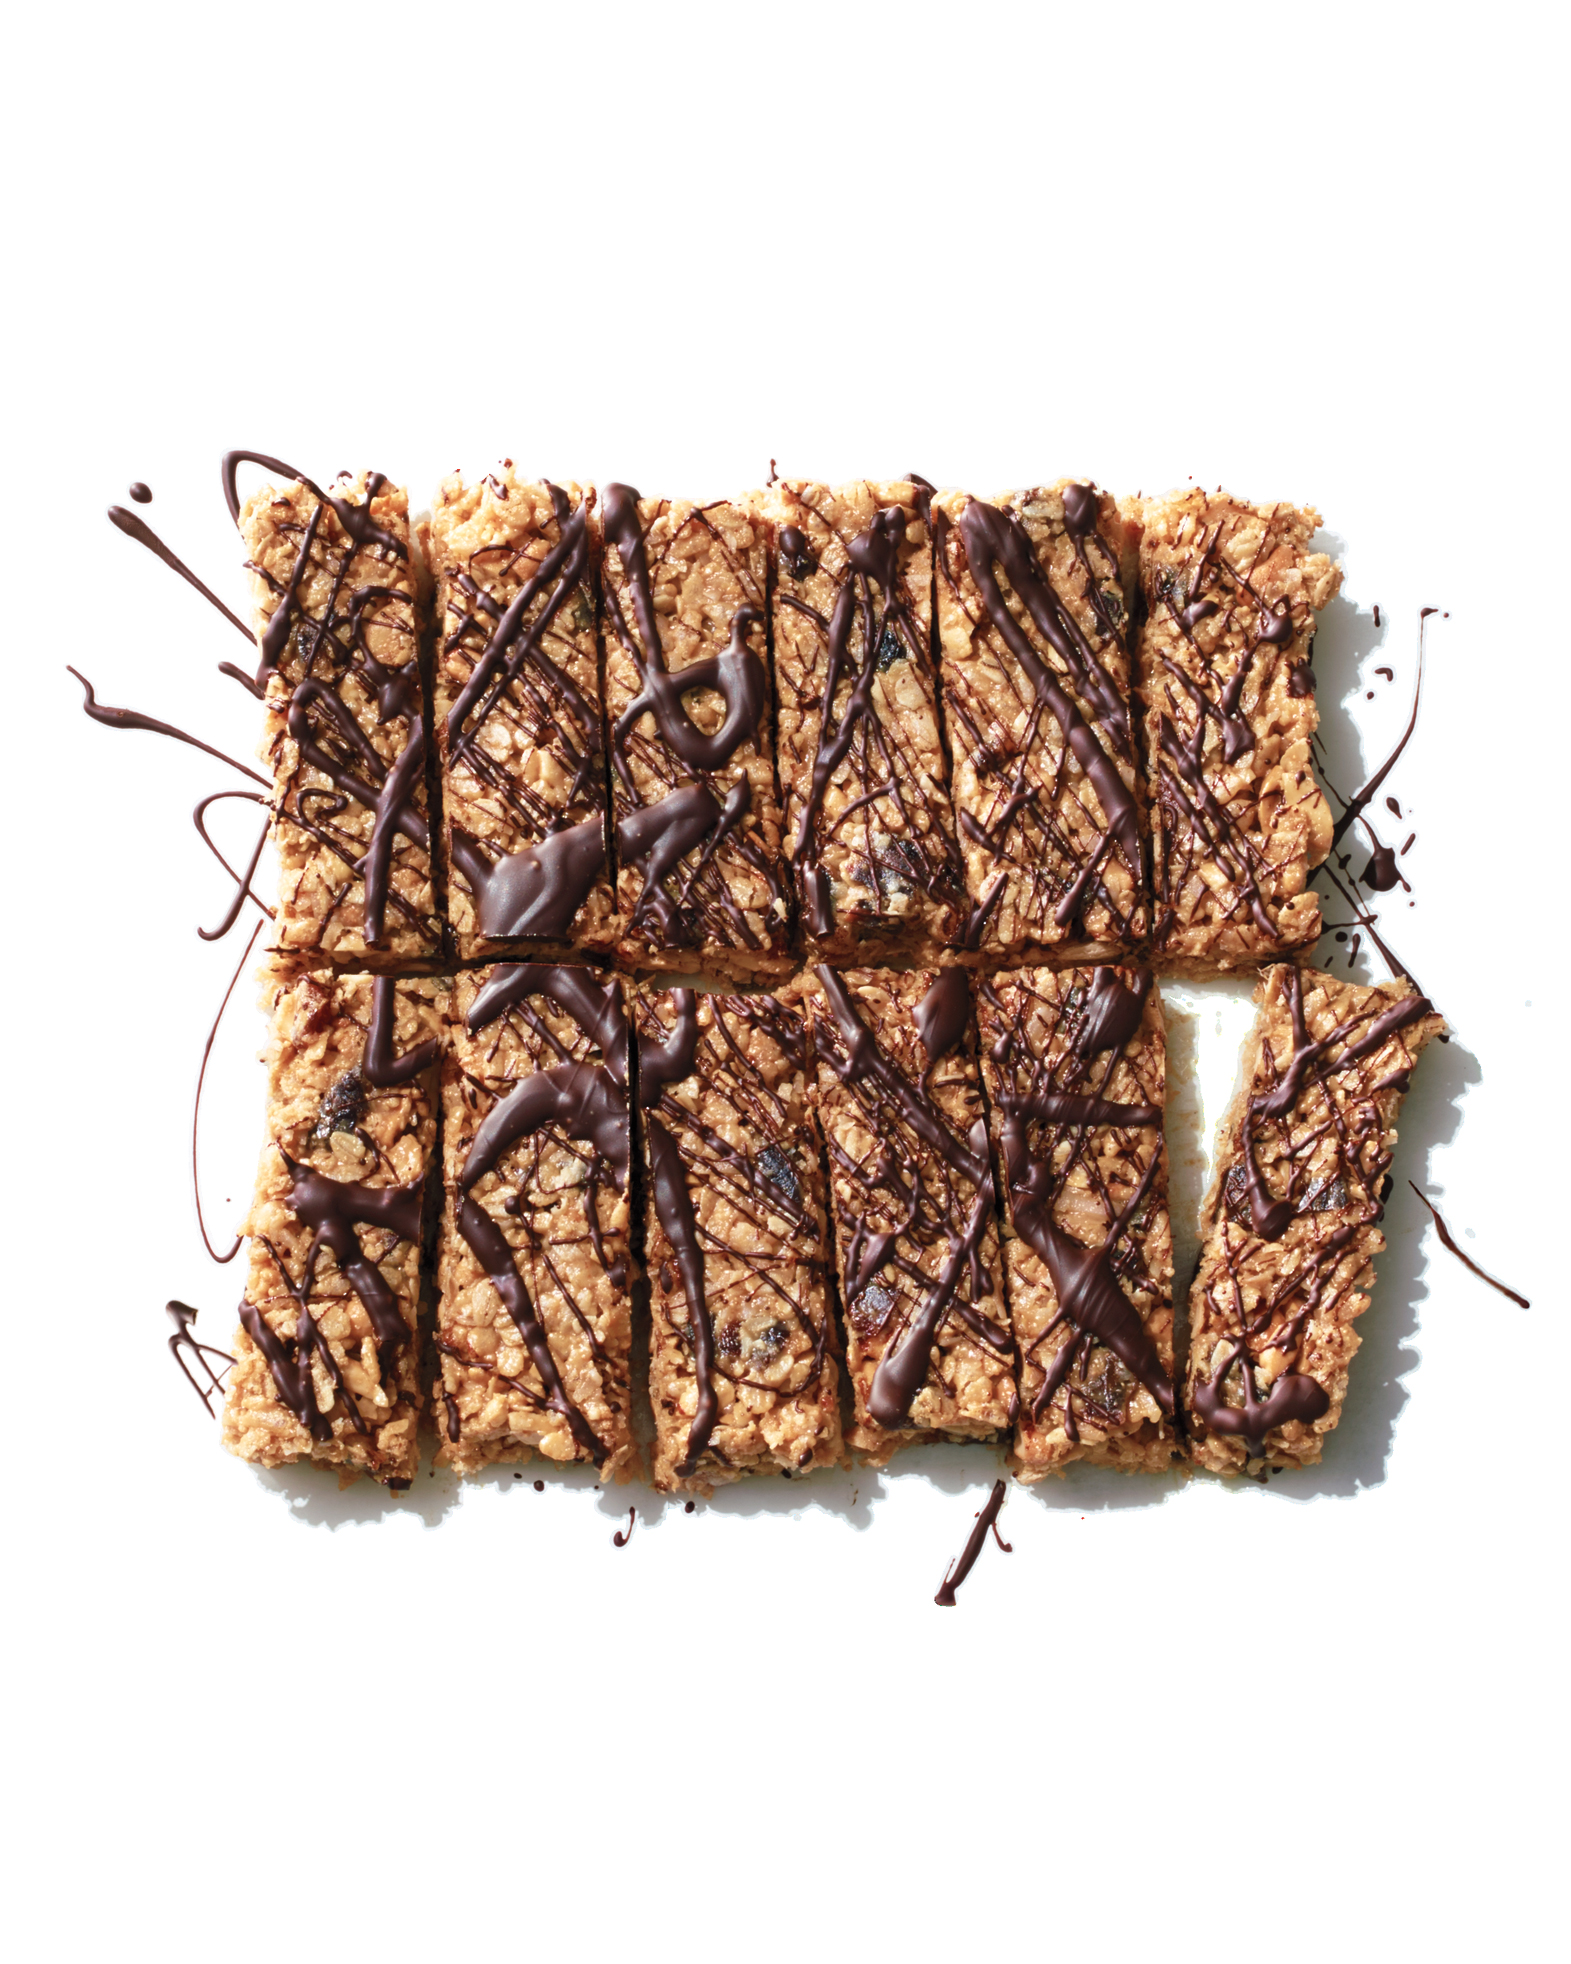 Cashew-Date-Coconut Energy Bars